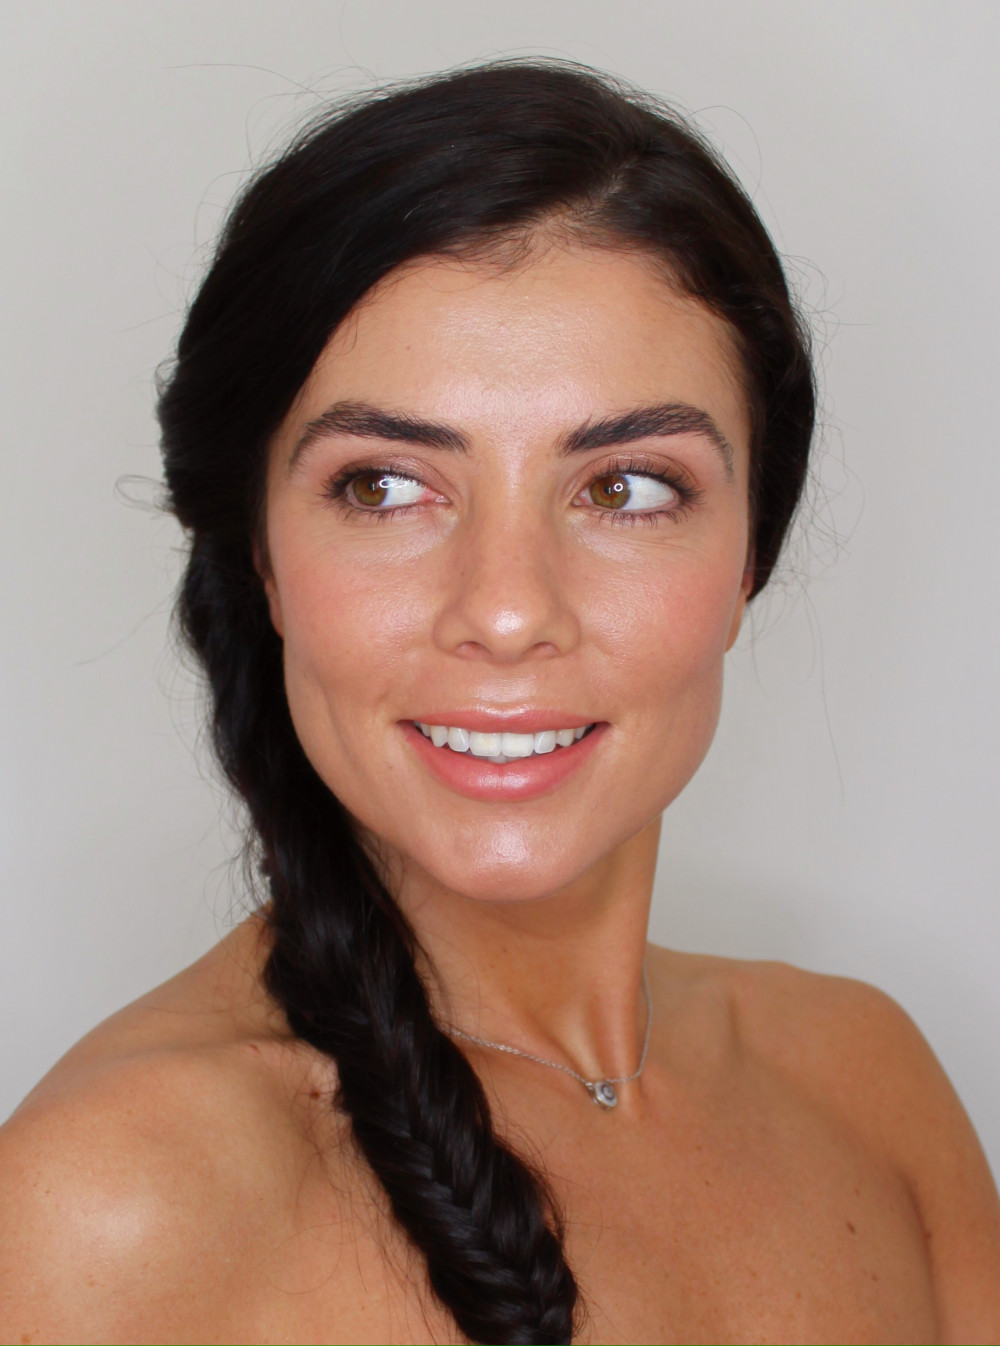 Here is a natural, glowing look I created for the beautiful Rosey. I used lots of cream products for that extra glow factor, and added coverage to her skin only where needed. Finished off with a soft gold shimmer on the eyes and a peachy nude lip. - Make Me Bridal Artist: Vicky Jiggens Makeup Artist. #naturalmakeup #glow #glowingskin #modernbride #naturalskin